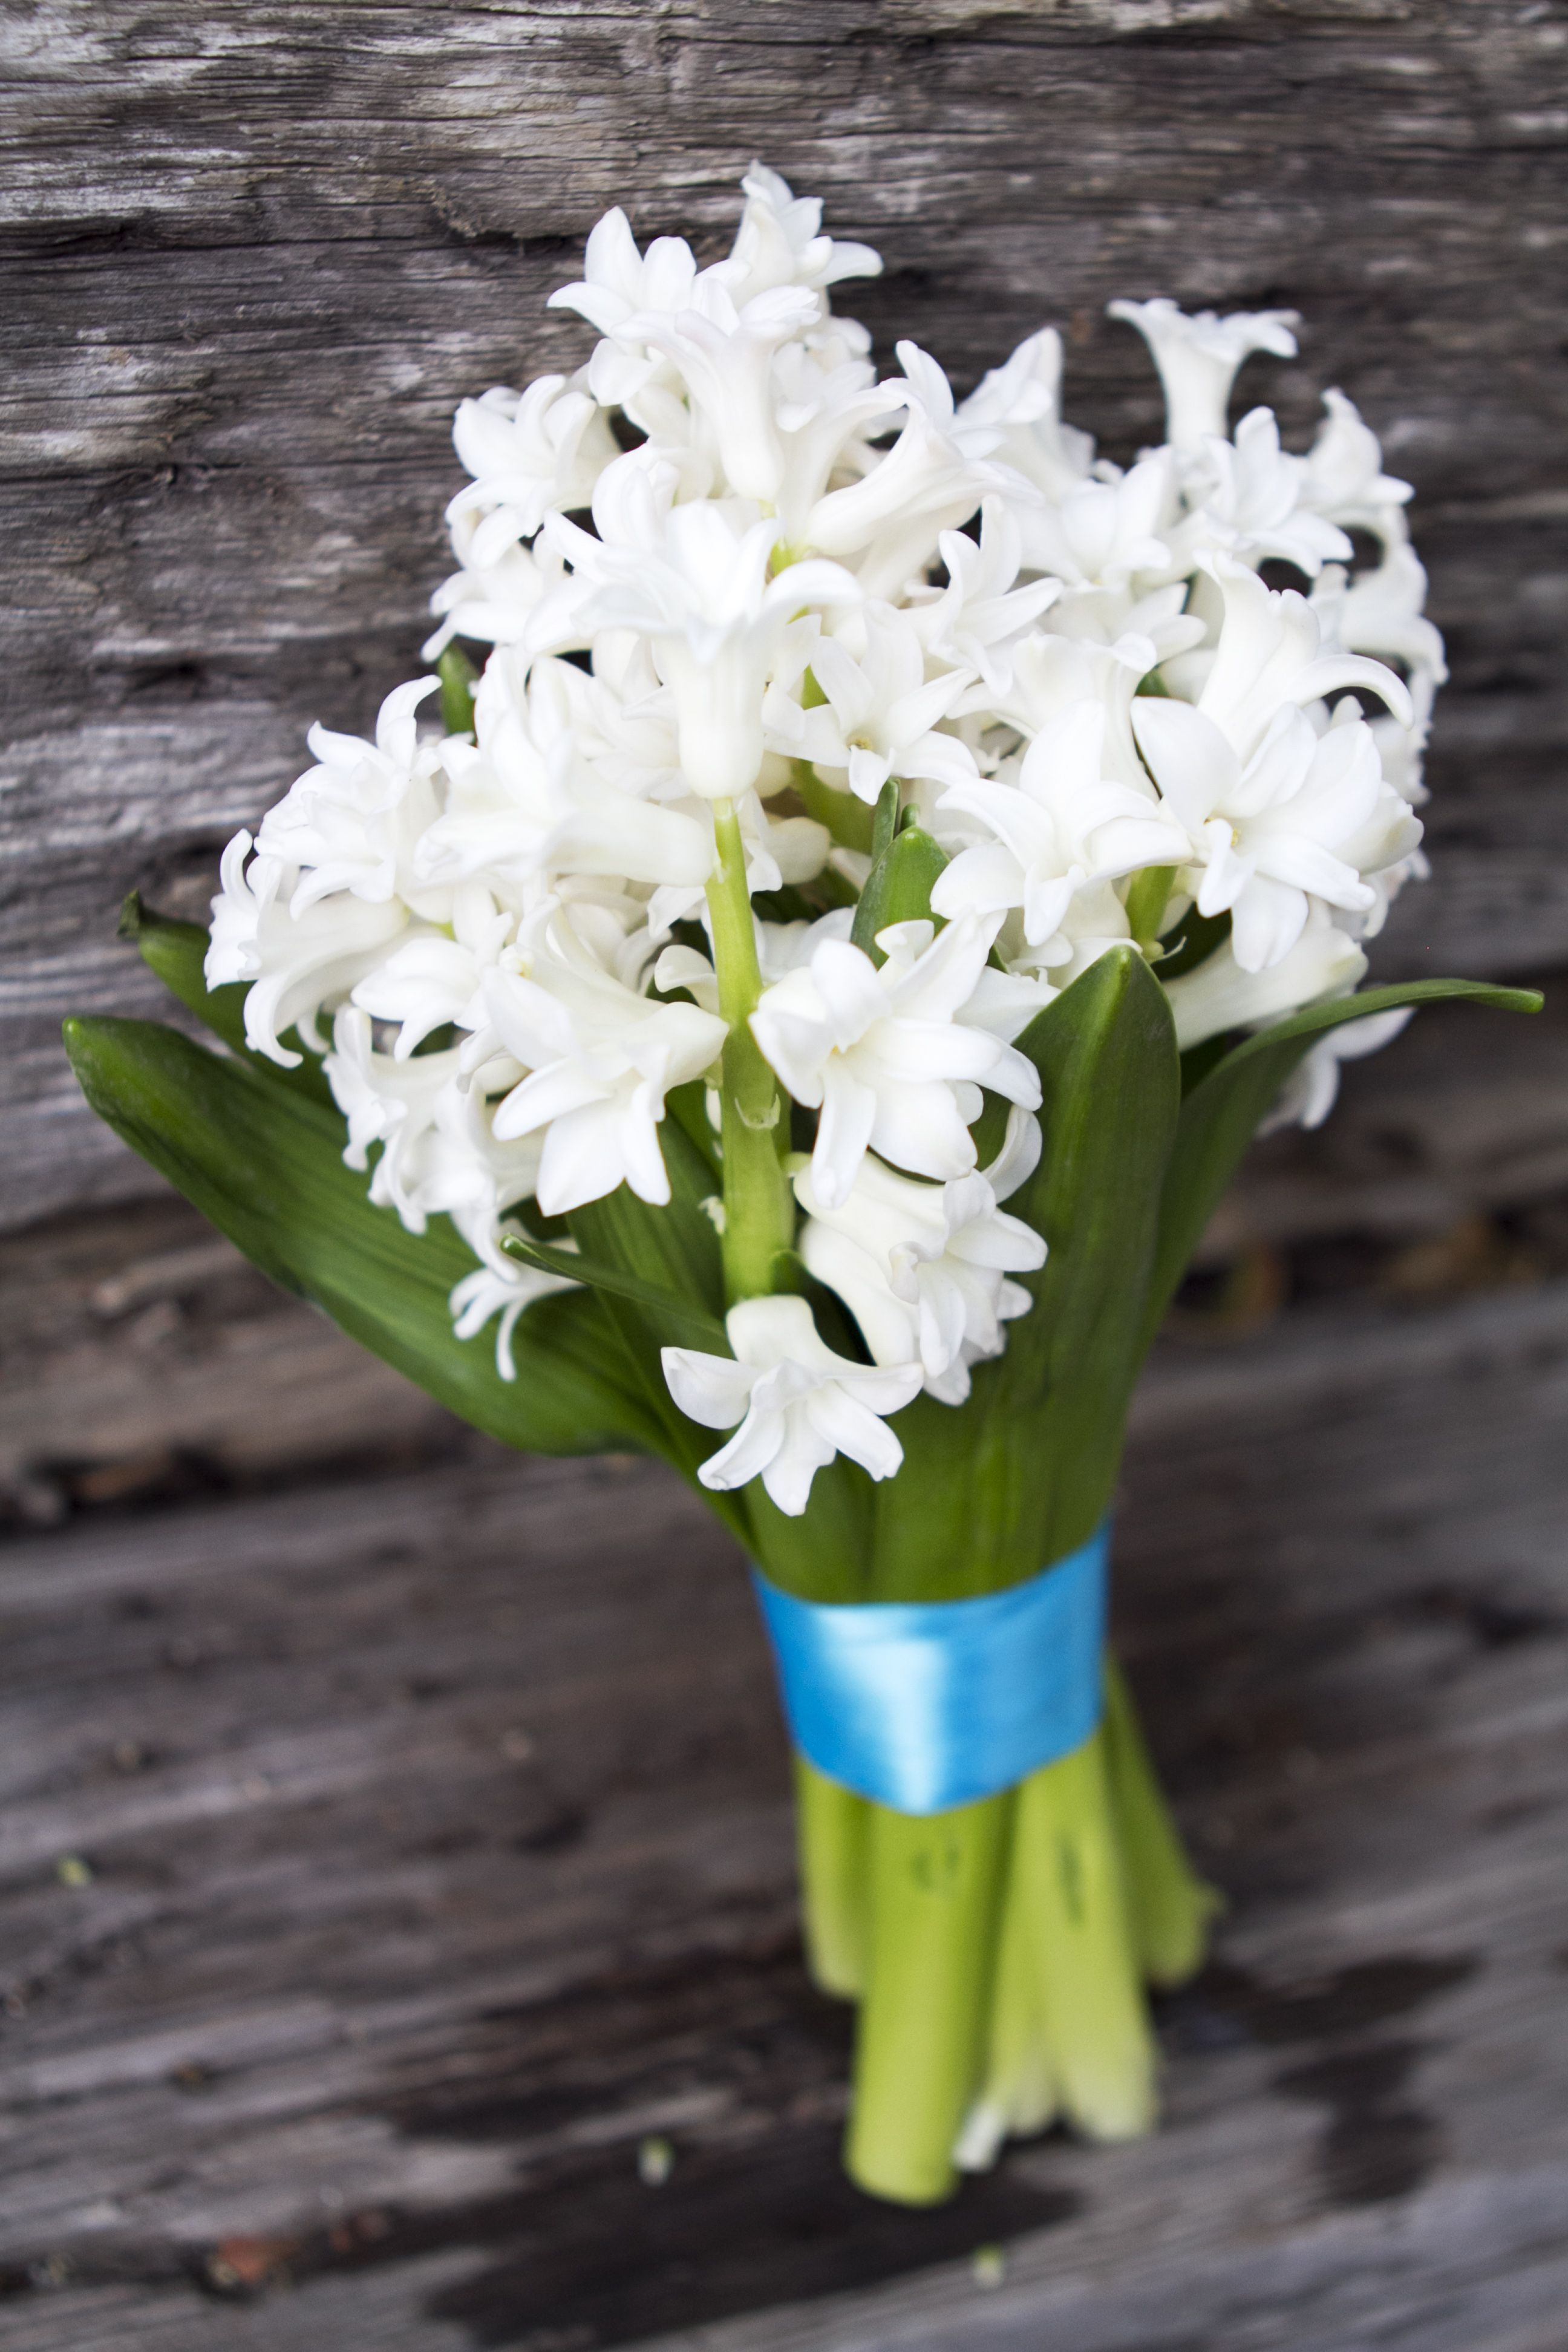 Bouquet with white hyacinth and teal blue ribbon simply bouquets bouquet with white hyacinth and teal blue ribbon dhlflorist Choice Image